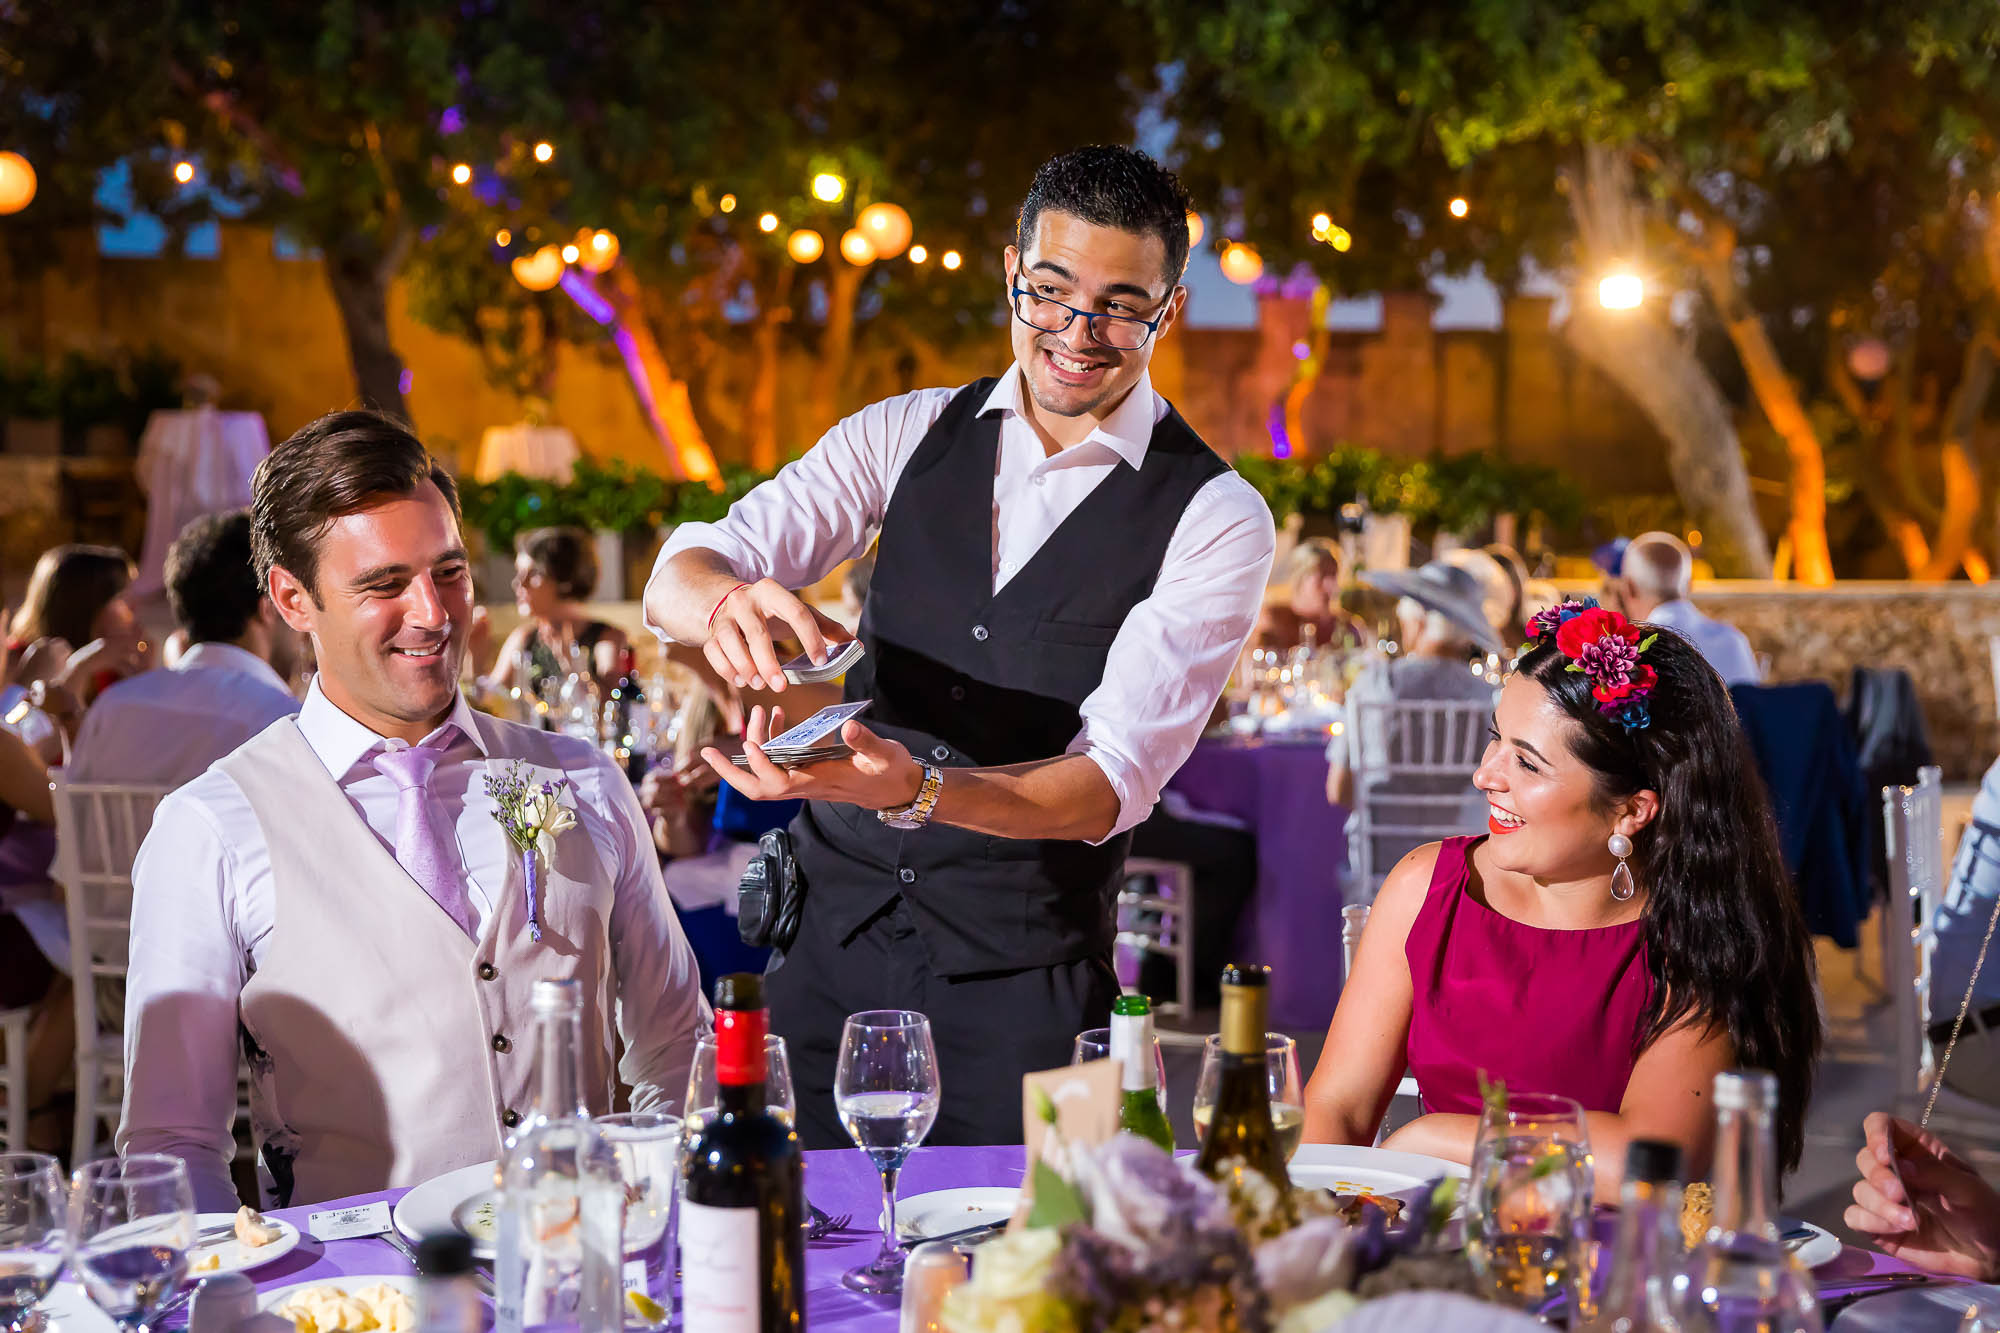 Wedding magician working his magic with the wedding guests during the wedding reception. Photo by Newcastle Upon Tyne based wedding photographer Elliot Nichol.